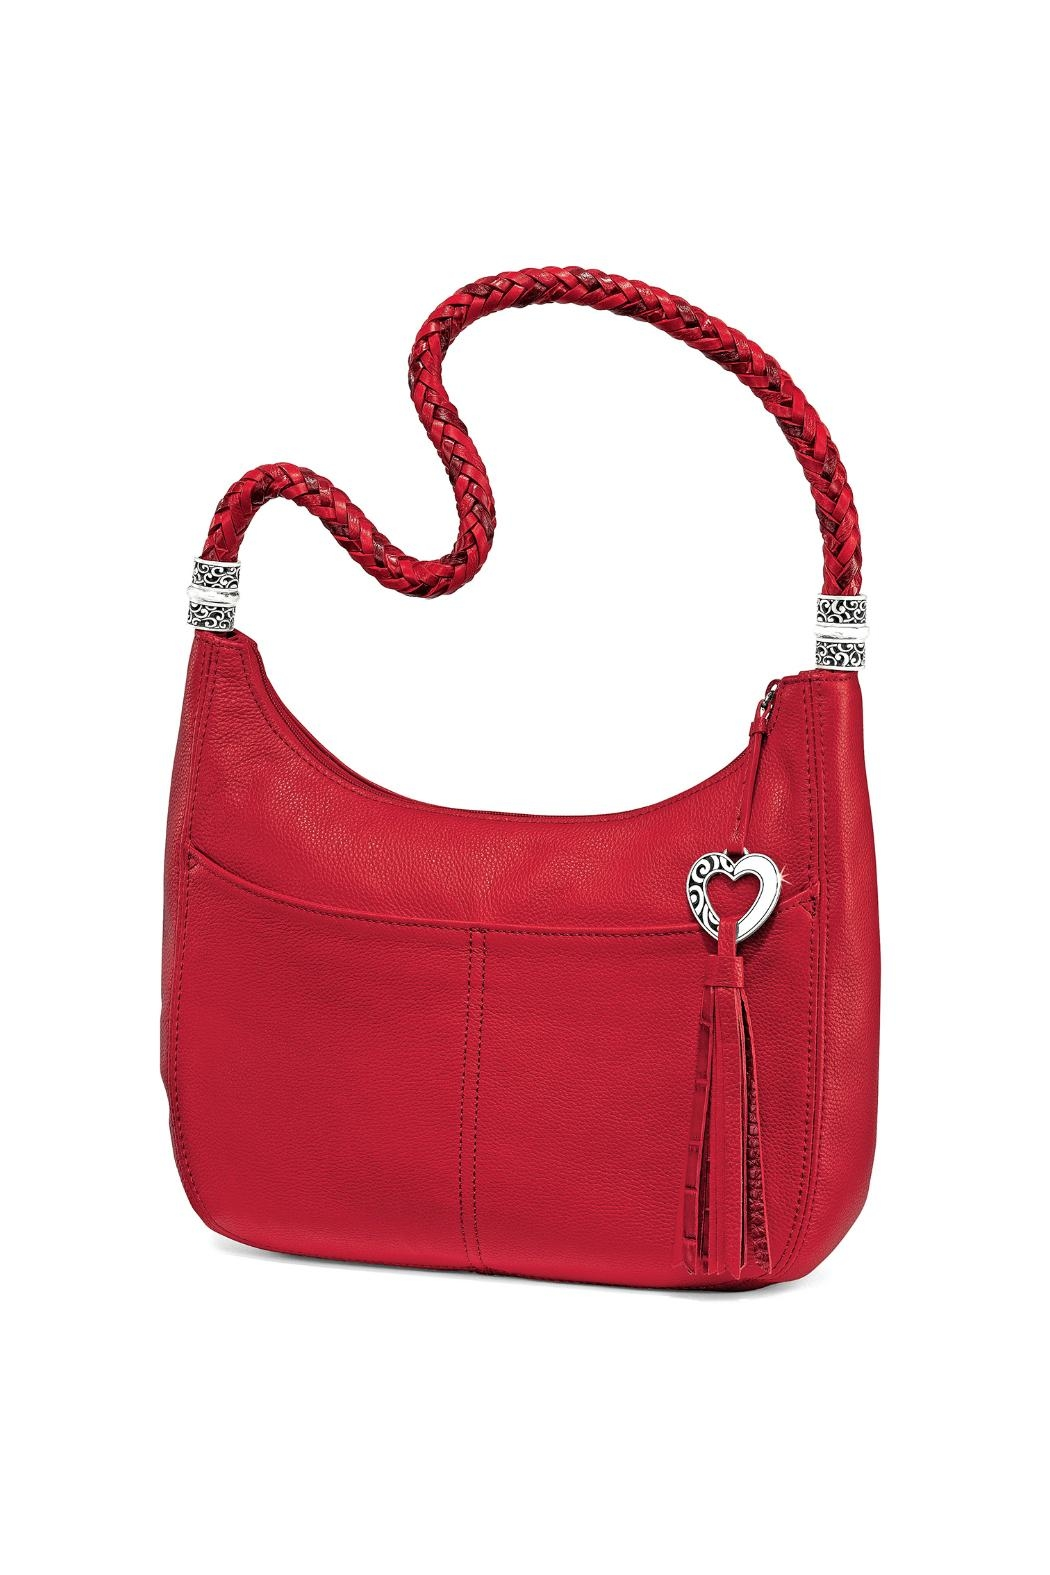 2100377ebd Brighton Barbados Ziptop Hobo from New York City by Protass Gifts ...